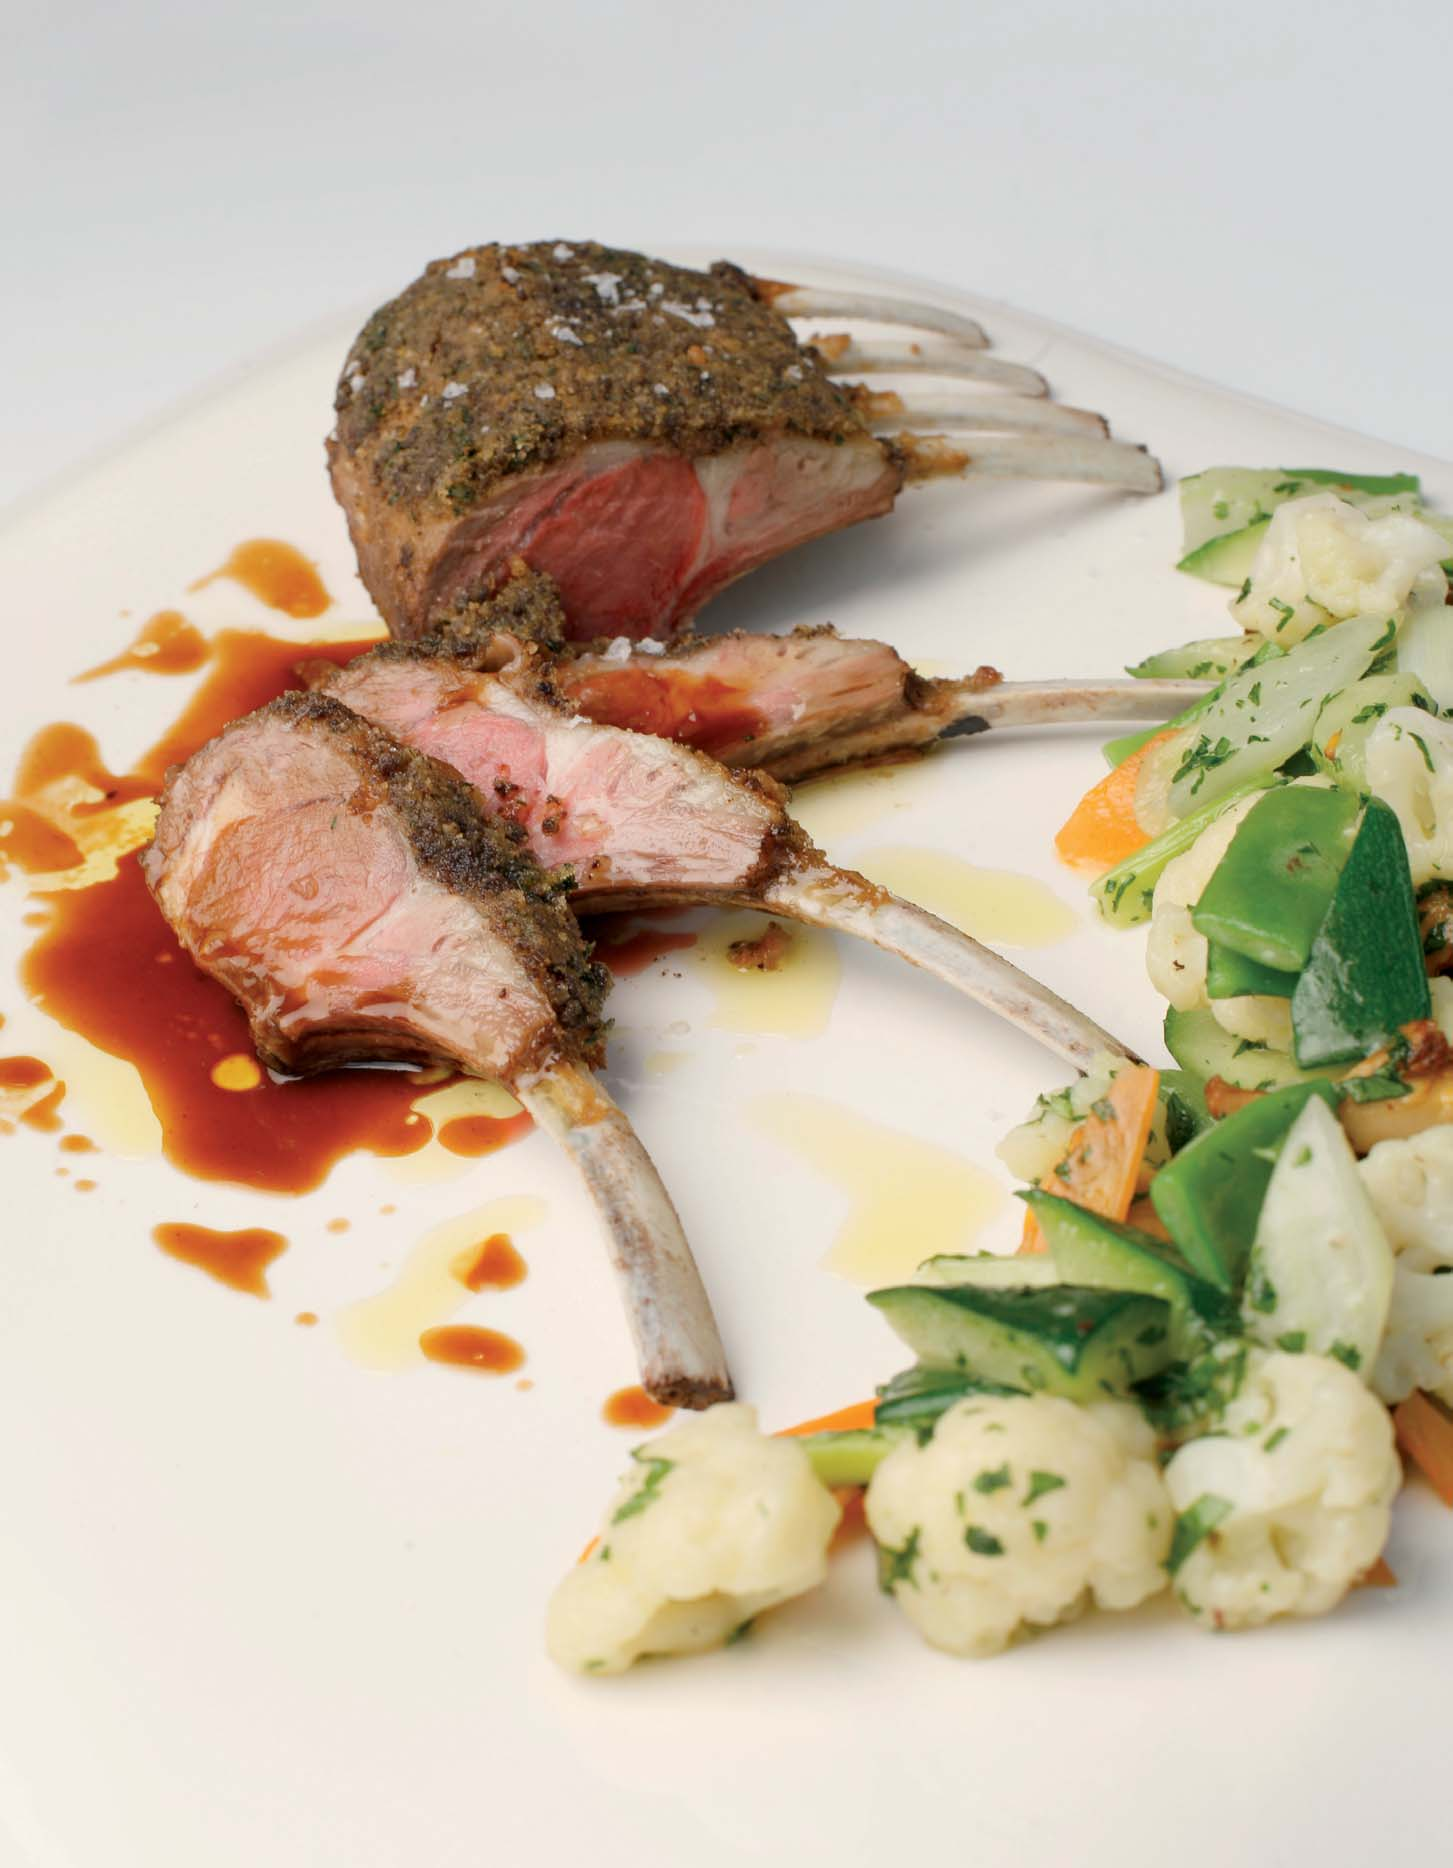 Rack of lamb in olive crust with Mallorcan olive oil - Recipes - Gastronomy - Balearic Islands - Agrifoodstuffs, designations of origin and Balearic gastronomy